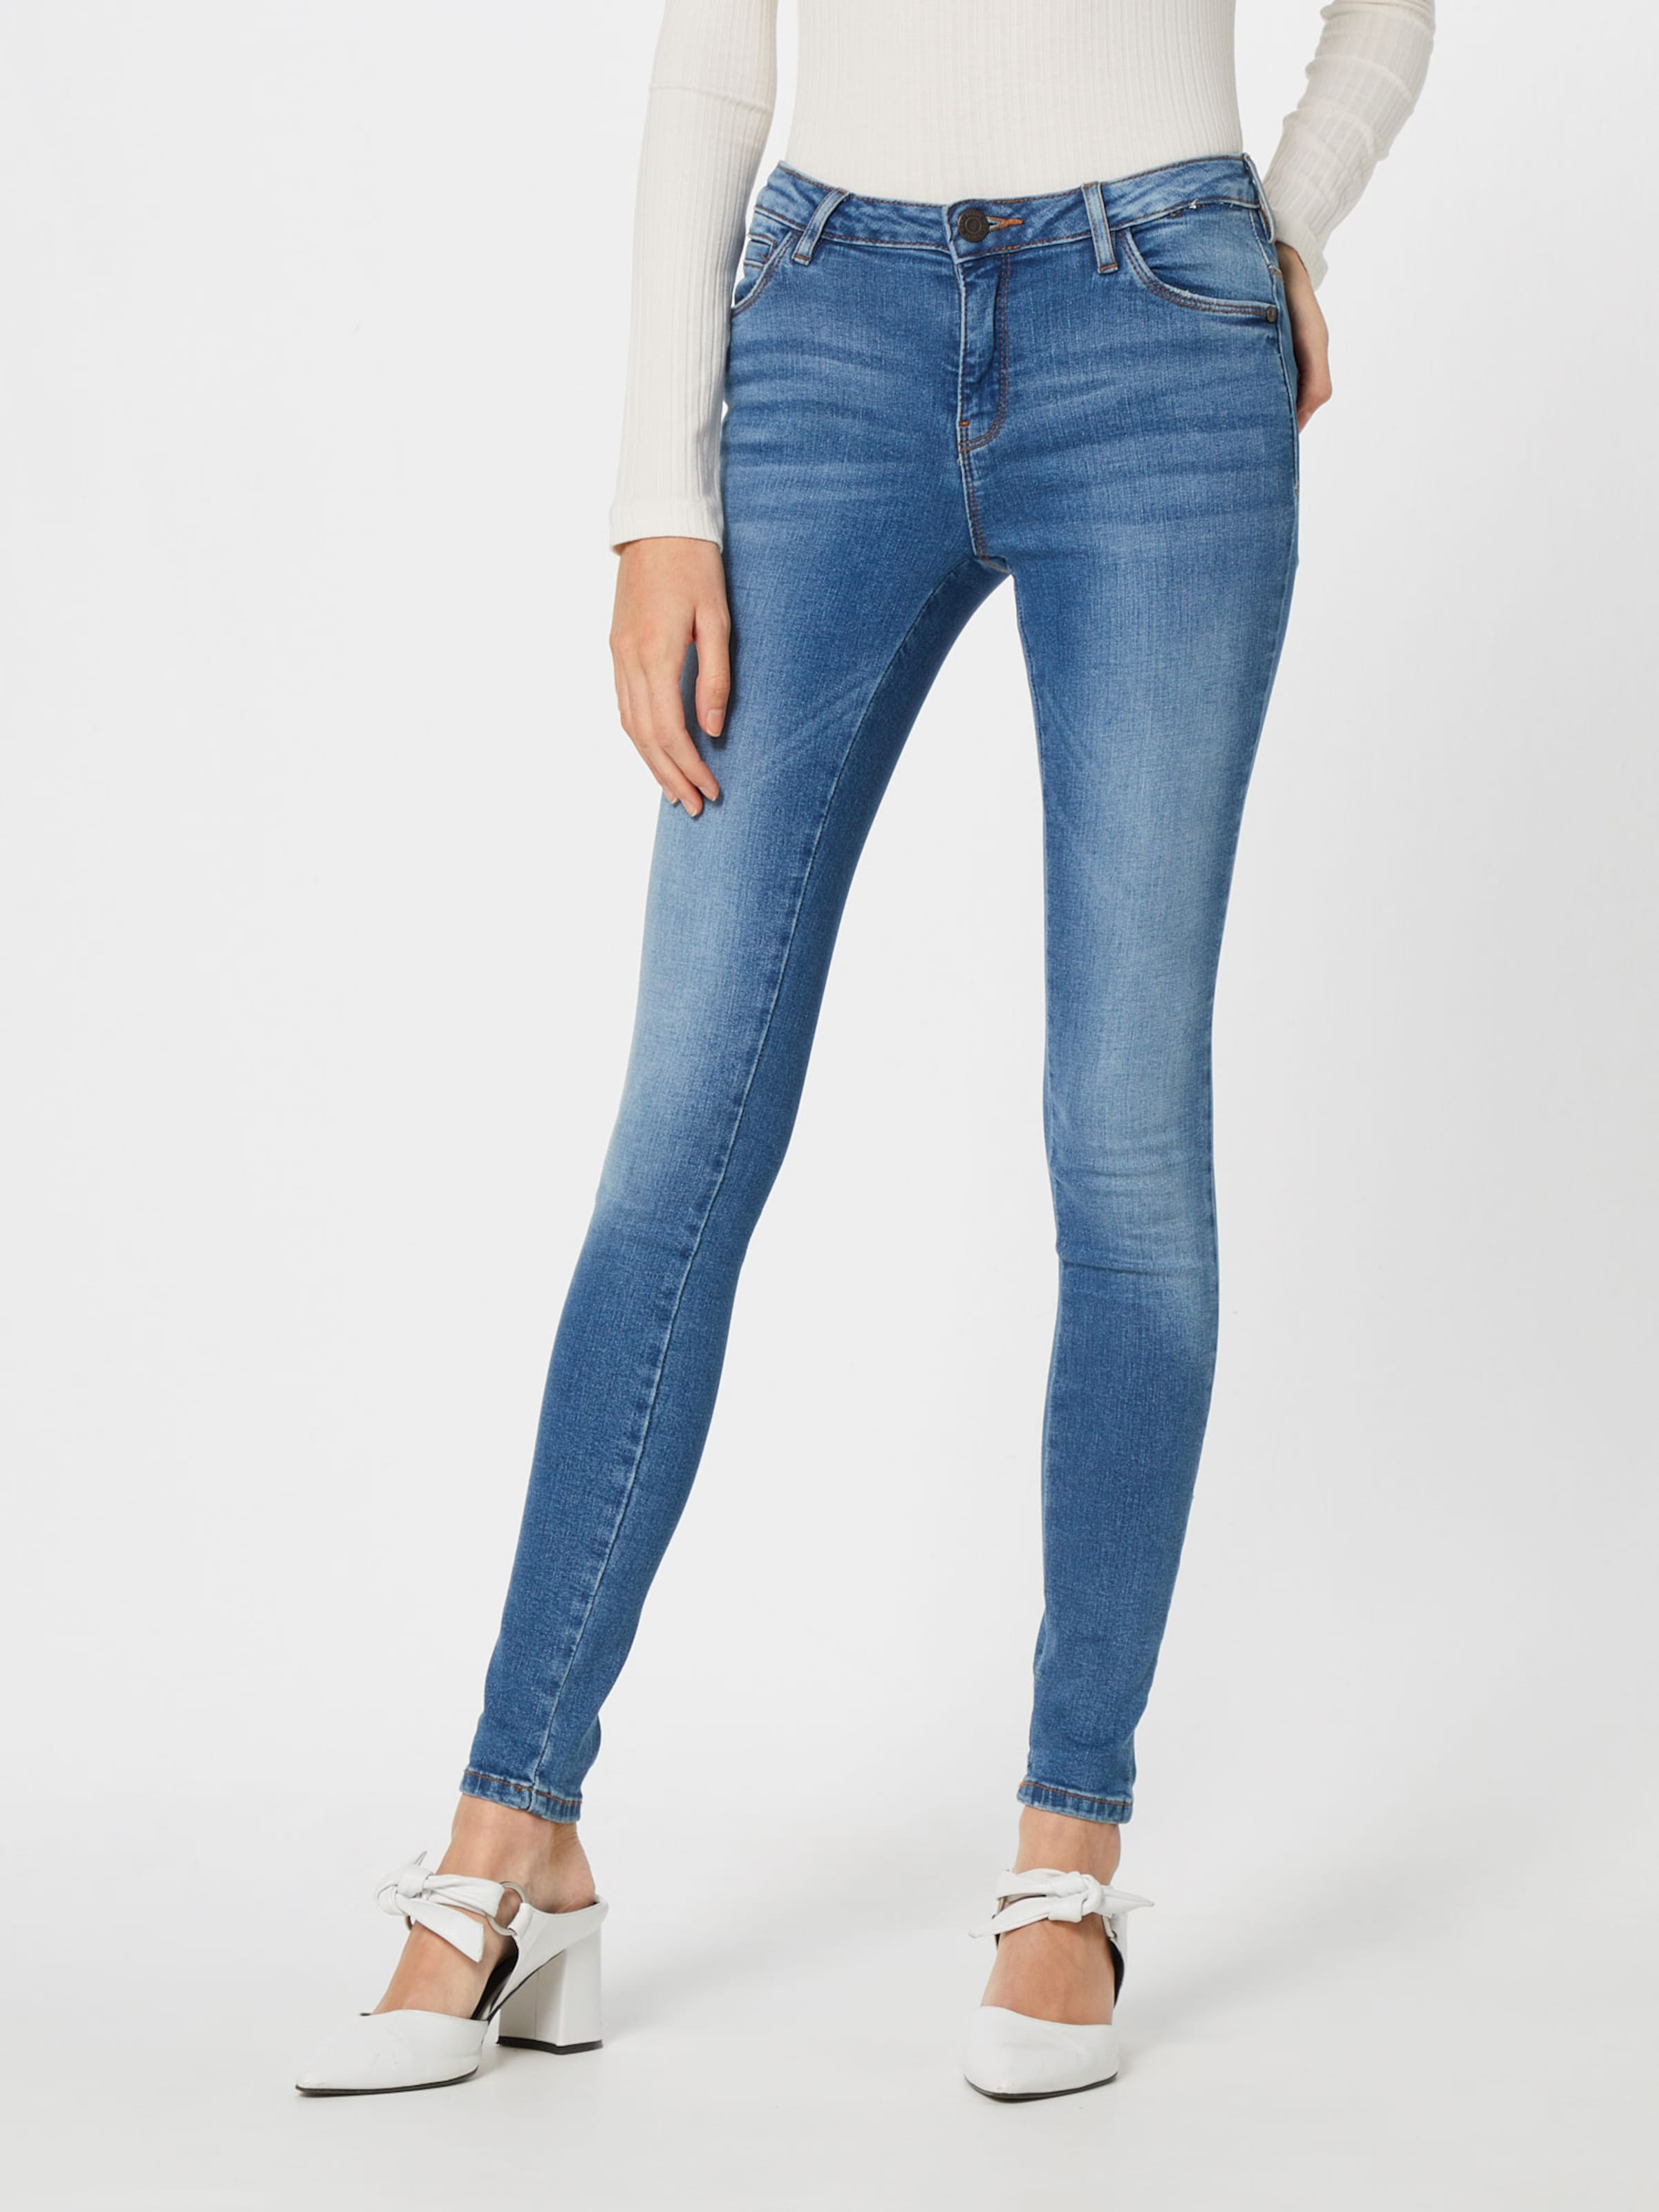 Jeans 'nmkimmy Skinny In Noisy Nw Blauw Jeans' Denim May WEH9YIeDb2